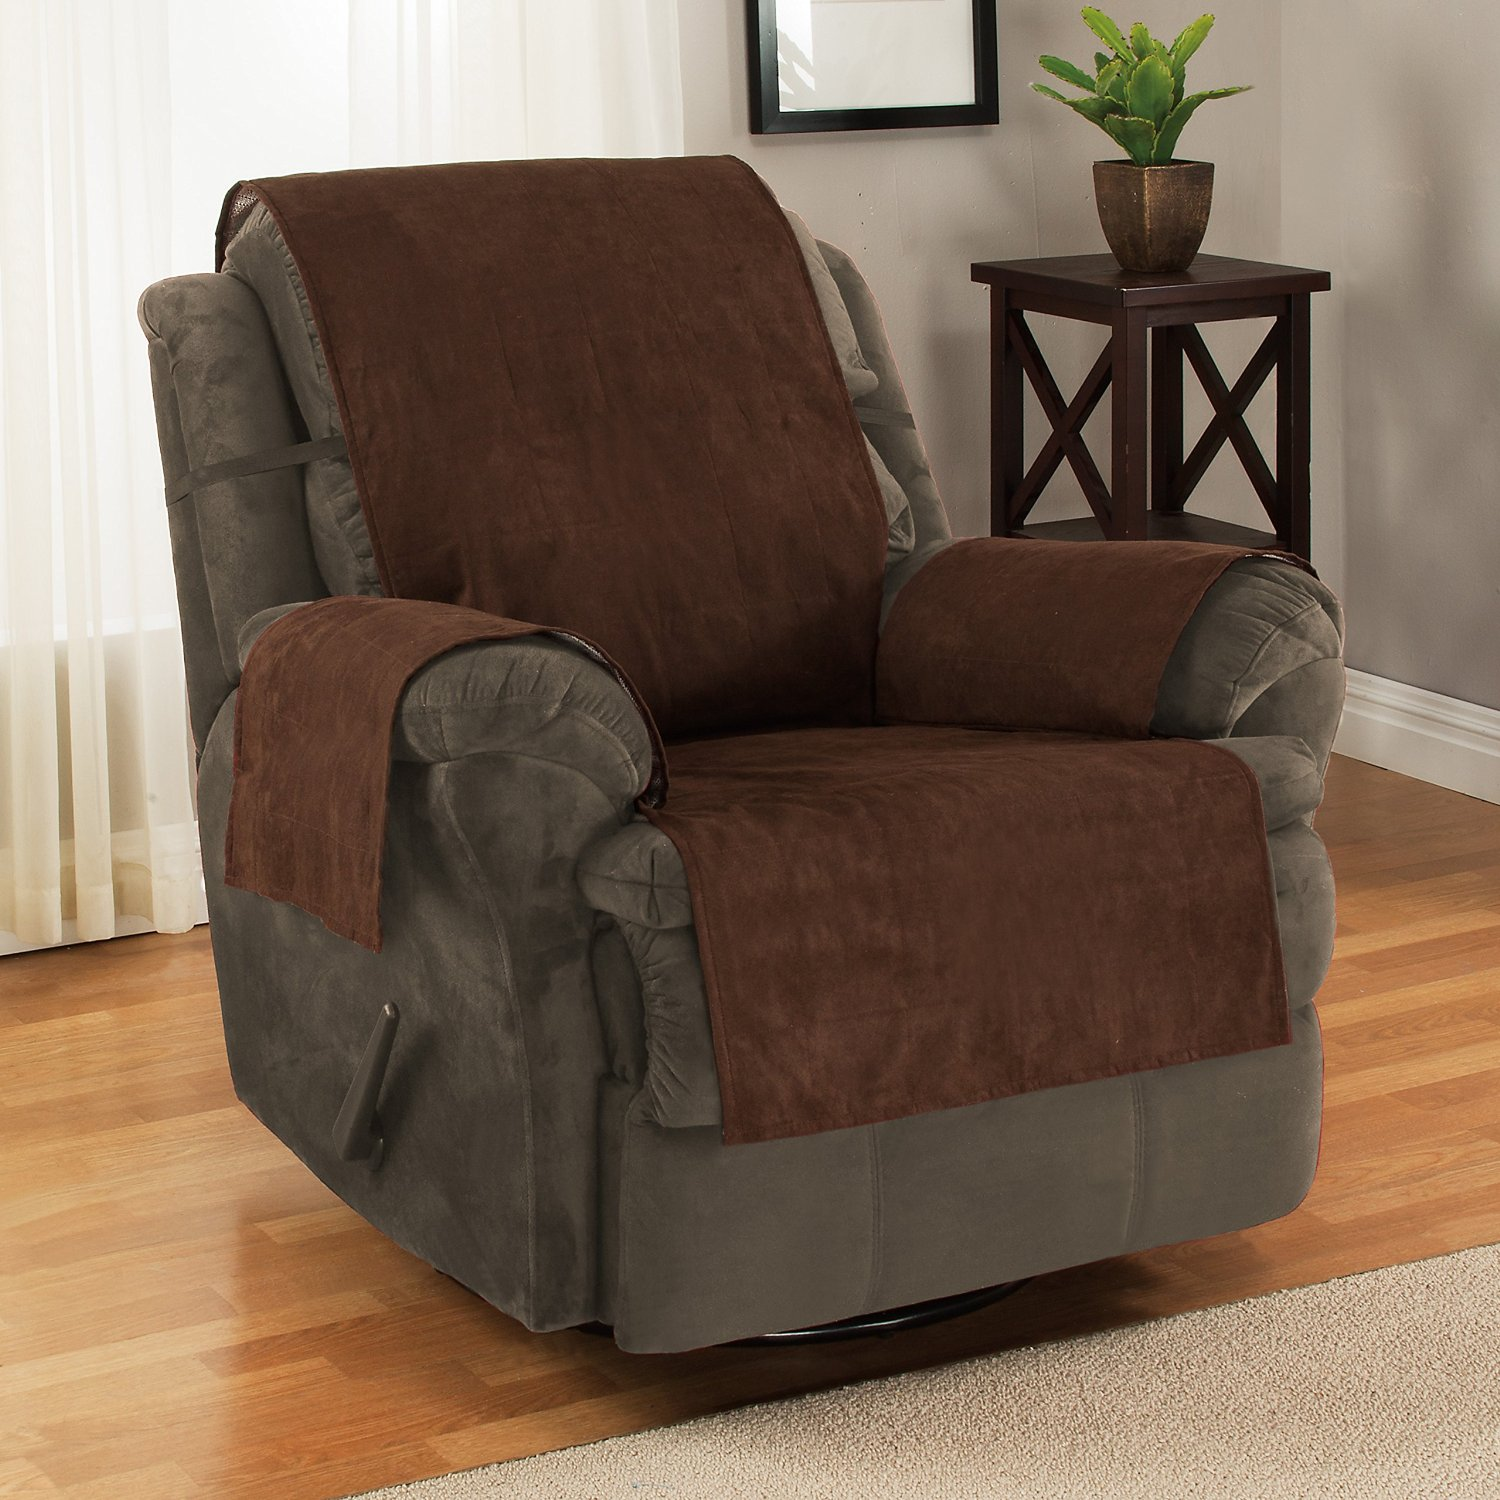 recliner chair covers raise height best lazyboy gift this holiday lazyboyreclinersonline